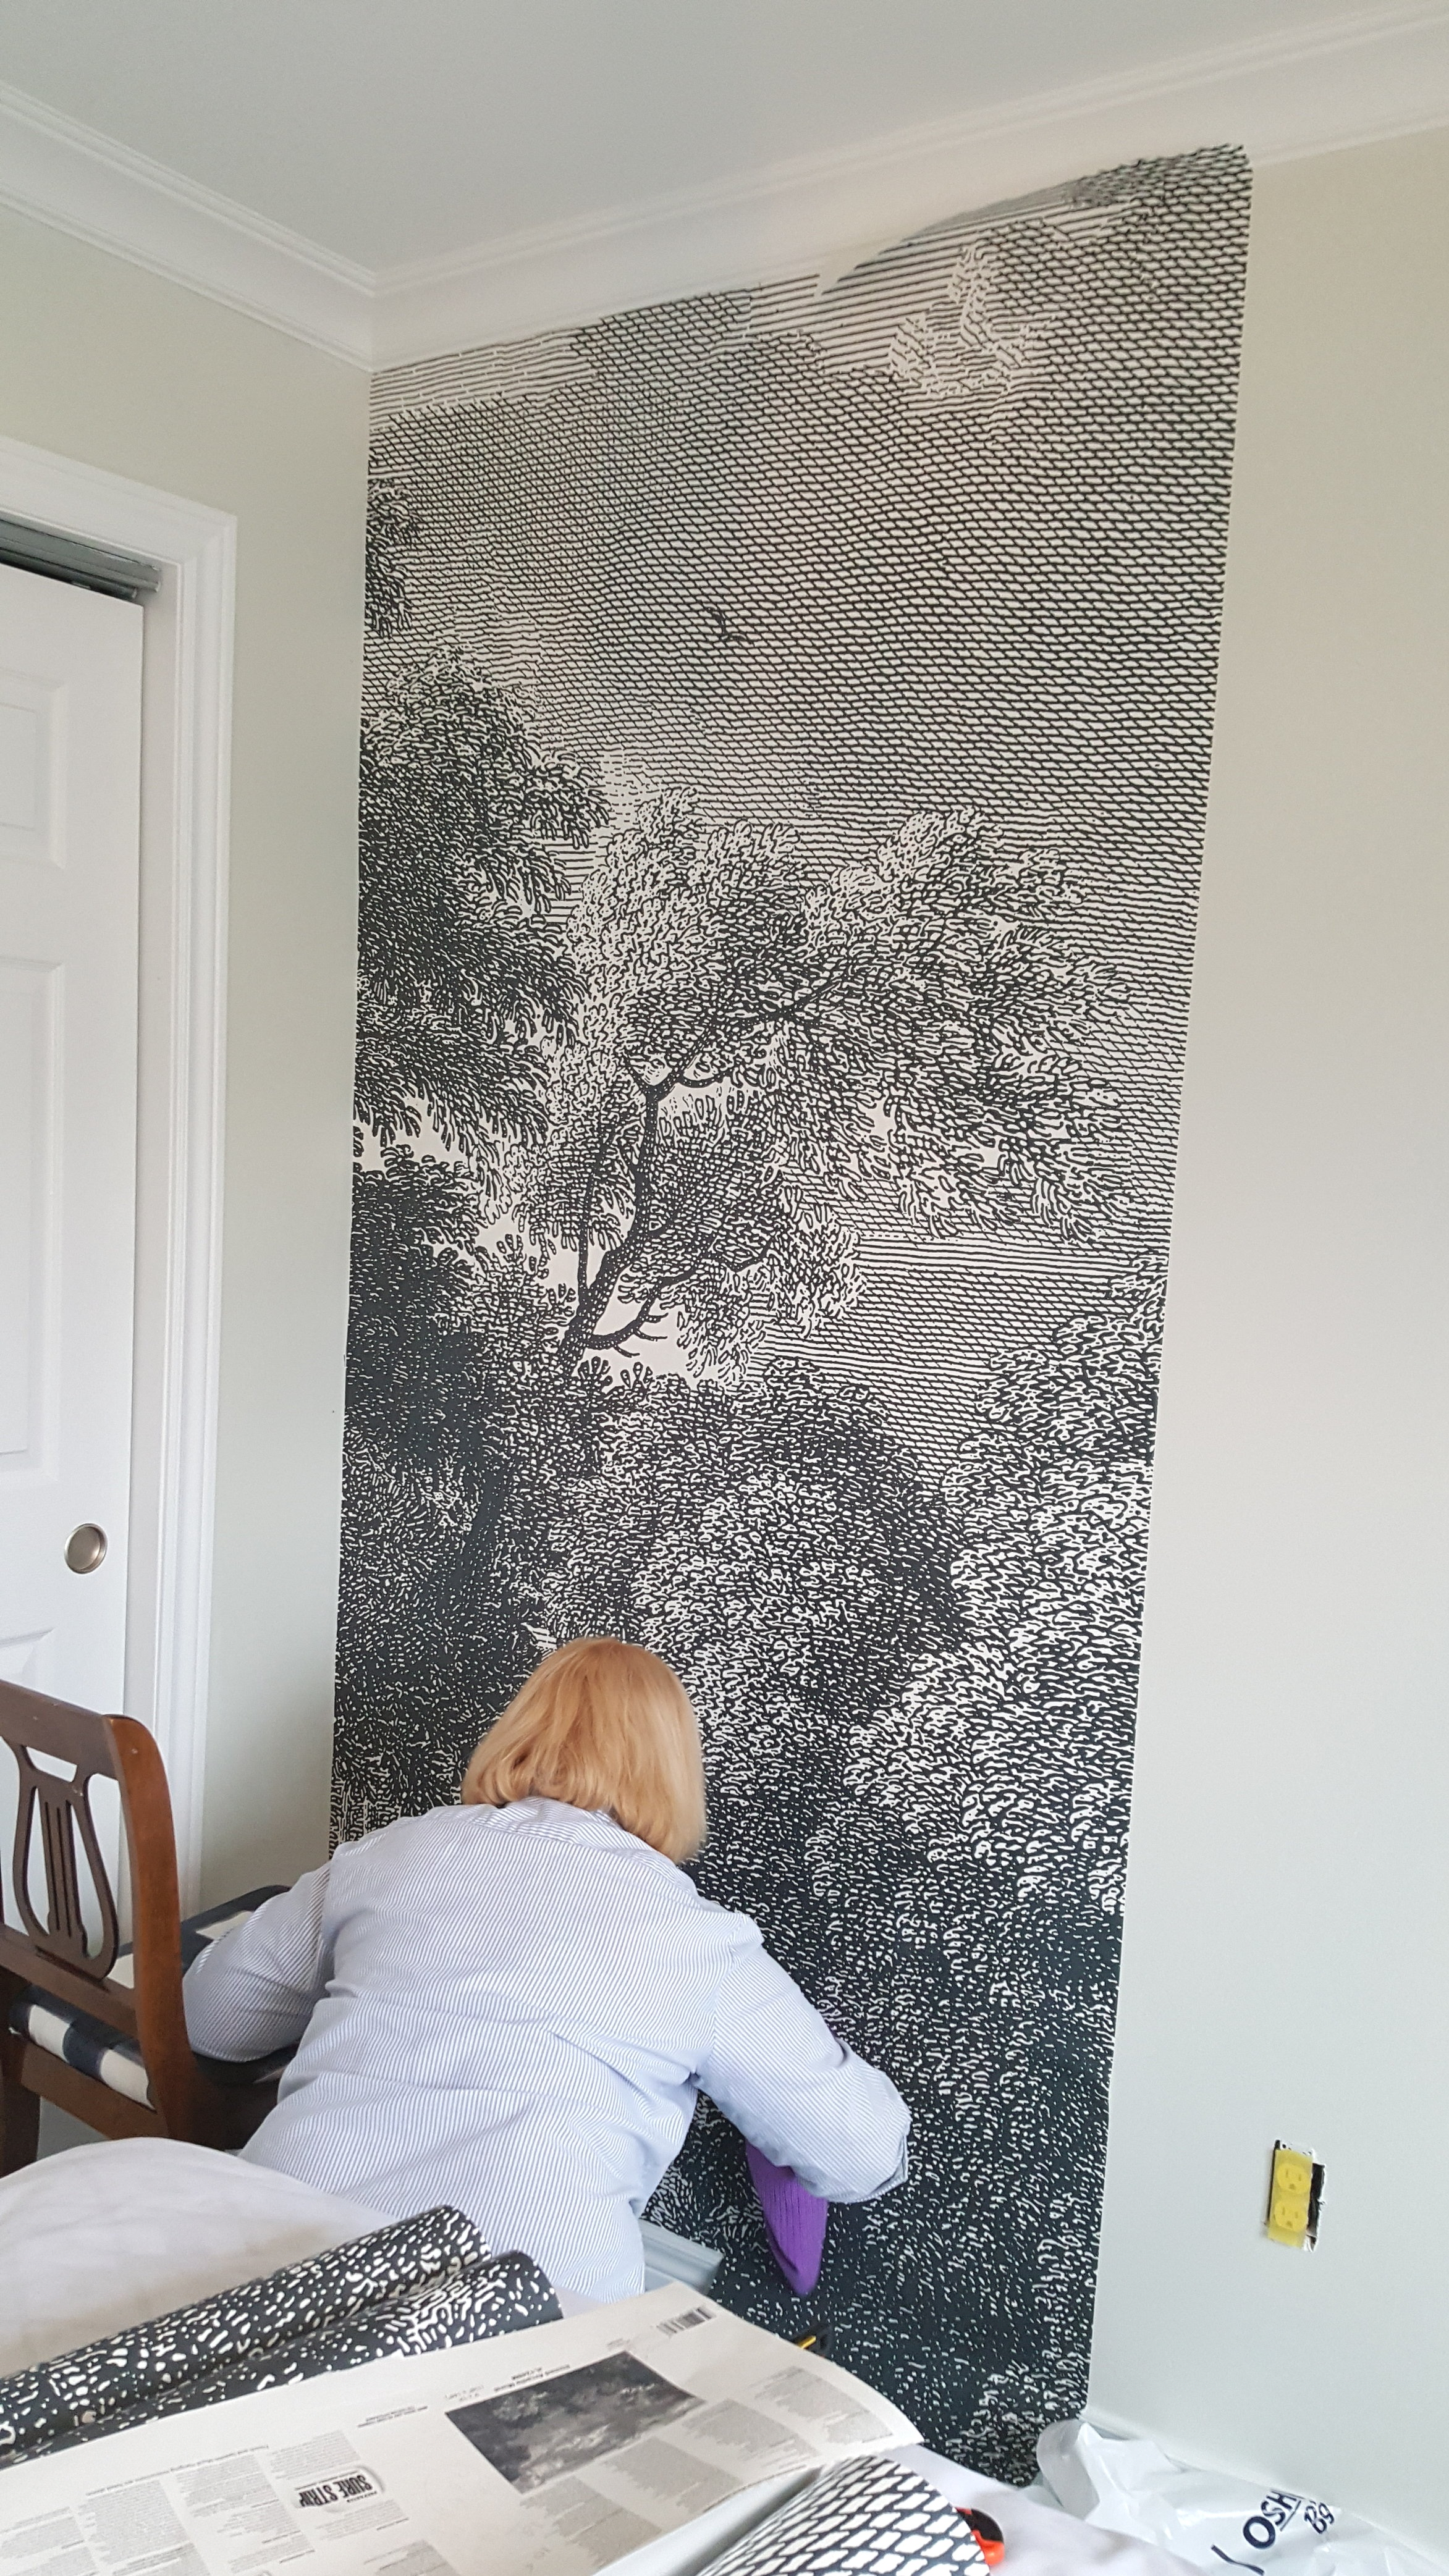 My Mom Susan smoothing out any air bubbles